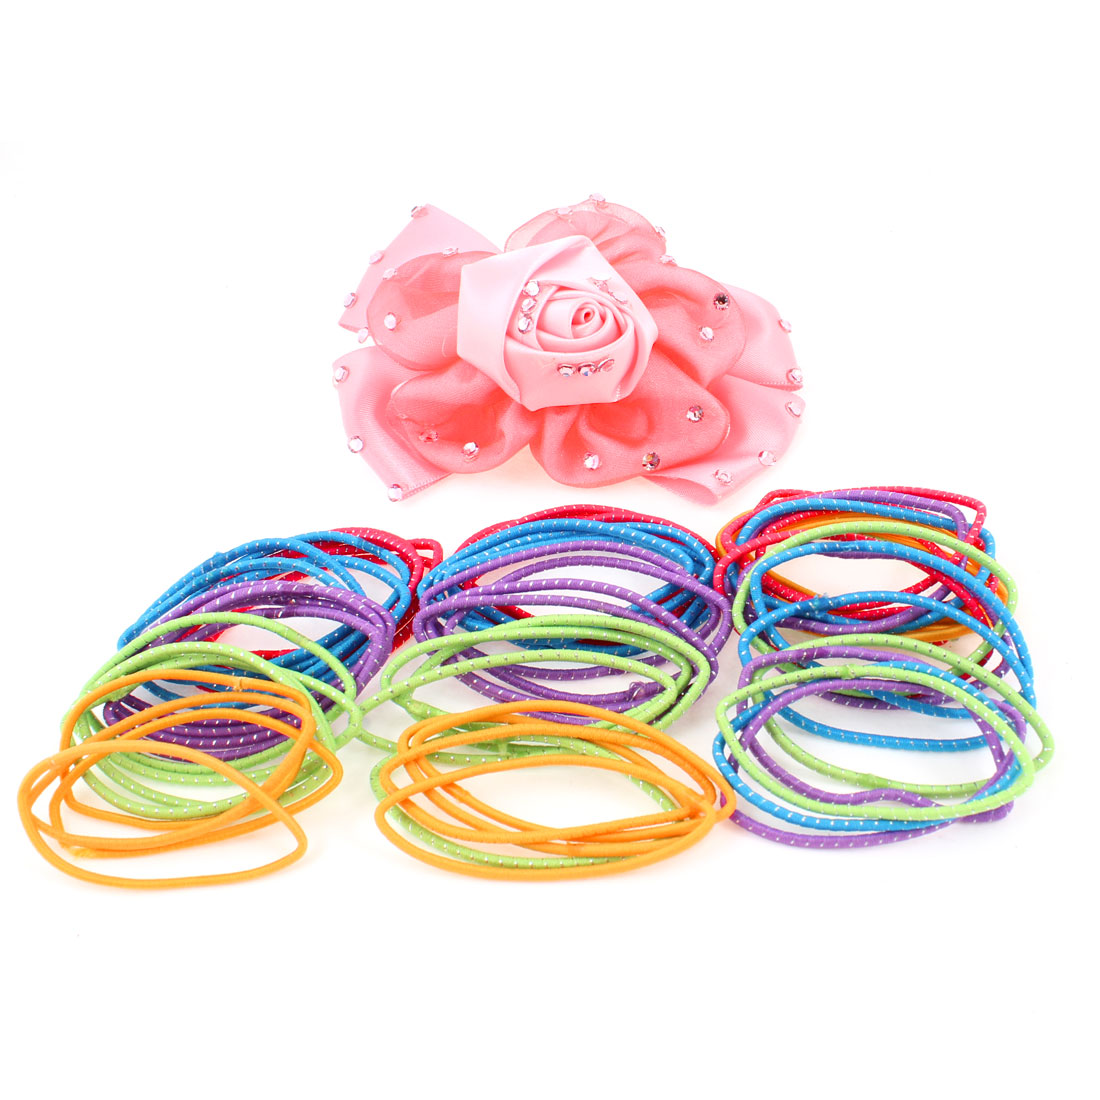 3 Packs Assorted Color Elastic Band Hair Tie Hairband w Pink Alligator Hair Clip